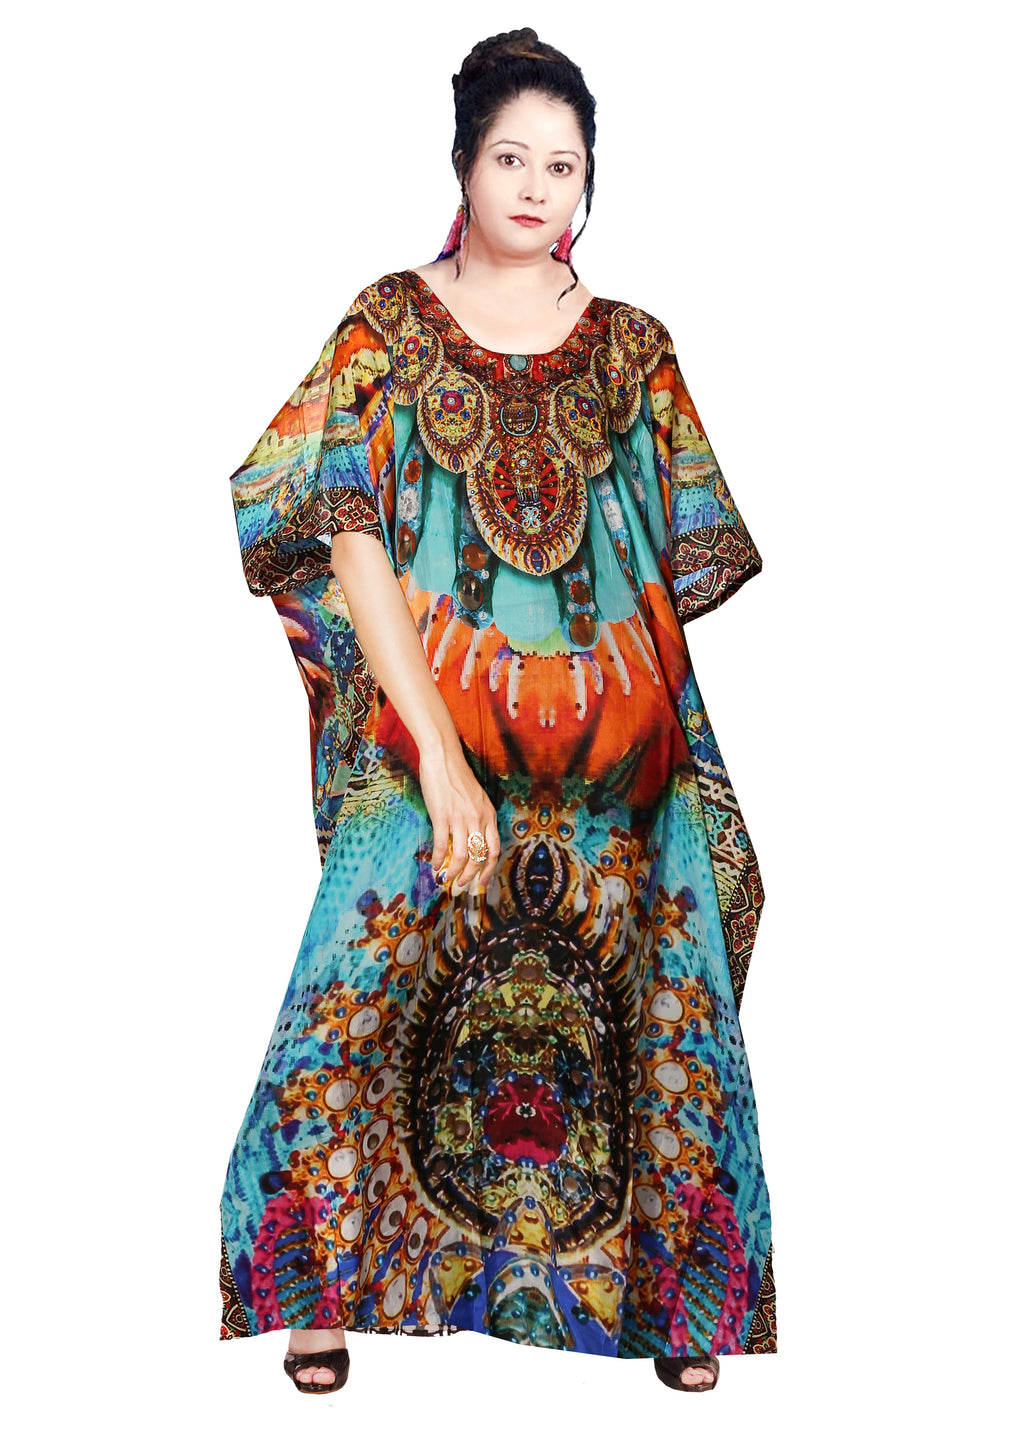 Designer Print kaftan Beach party kaftan dress embellished plus size kaftan for short womens - Silk kaftan